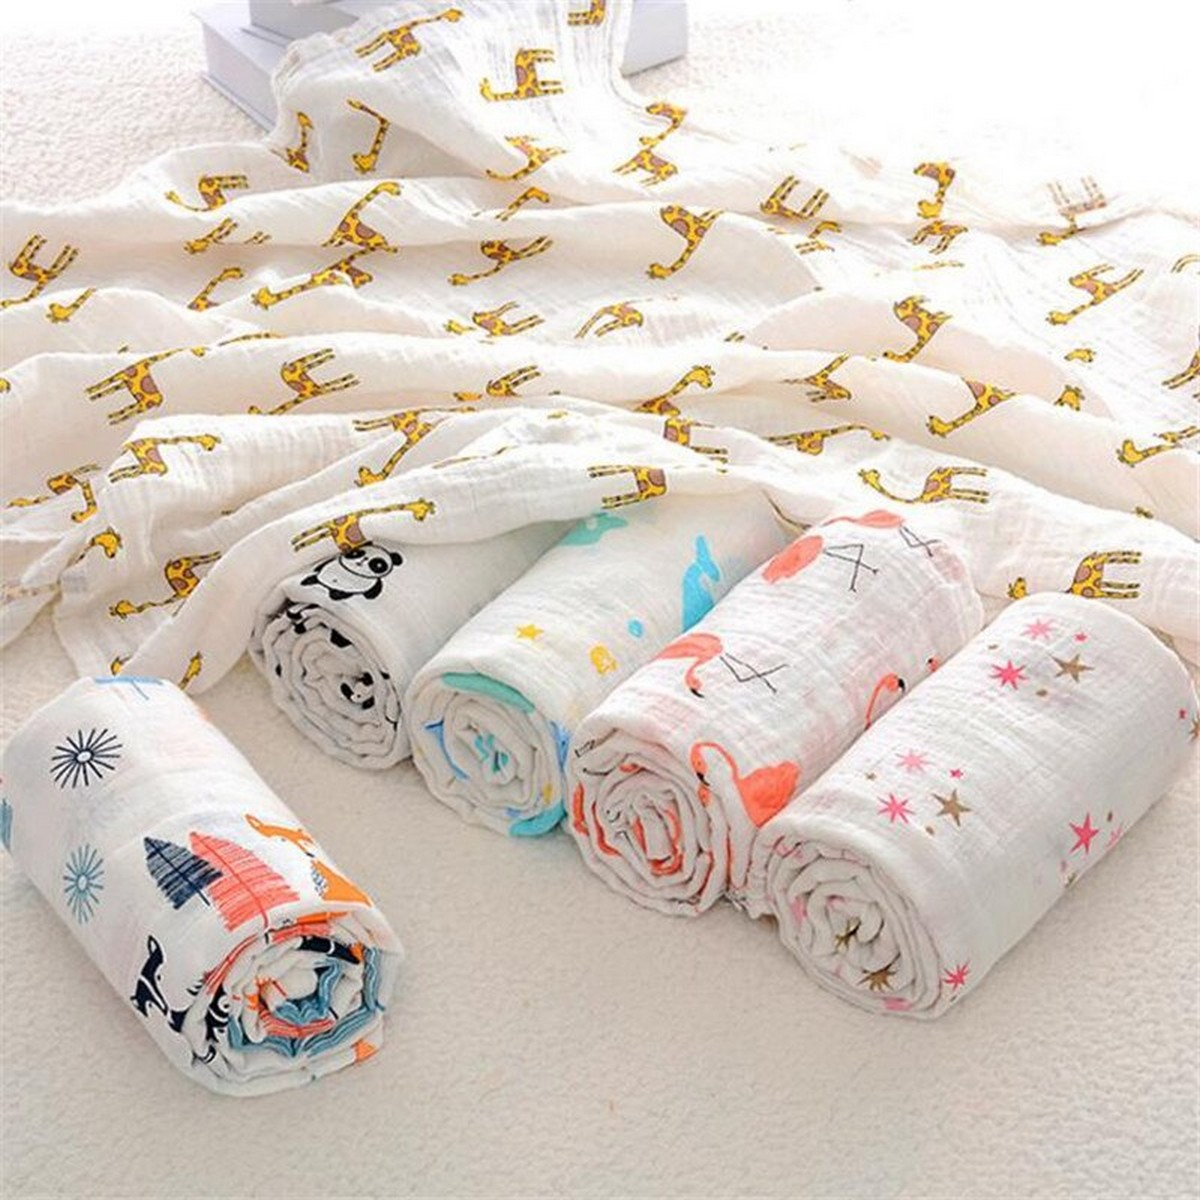 High Quality Baby Blanket Double-Layer Swaddle Blanket ,Cotton Soft Unisex Swaddle Wrap Cloth Stroller Cover, Baby Swaddle Wrap newborn for summer and winter Baby Swaddle Wrapping Sheet Baby Swaddles, baby blanket for boys, baby blanket for girls